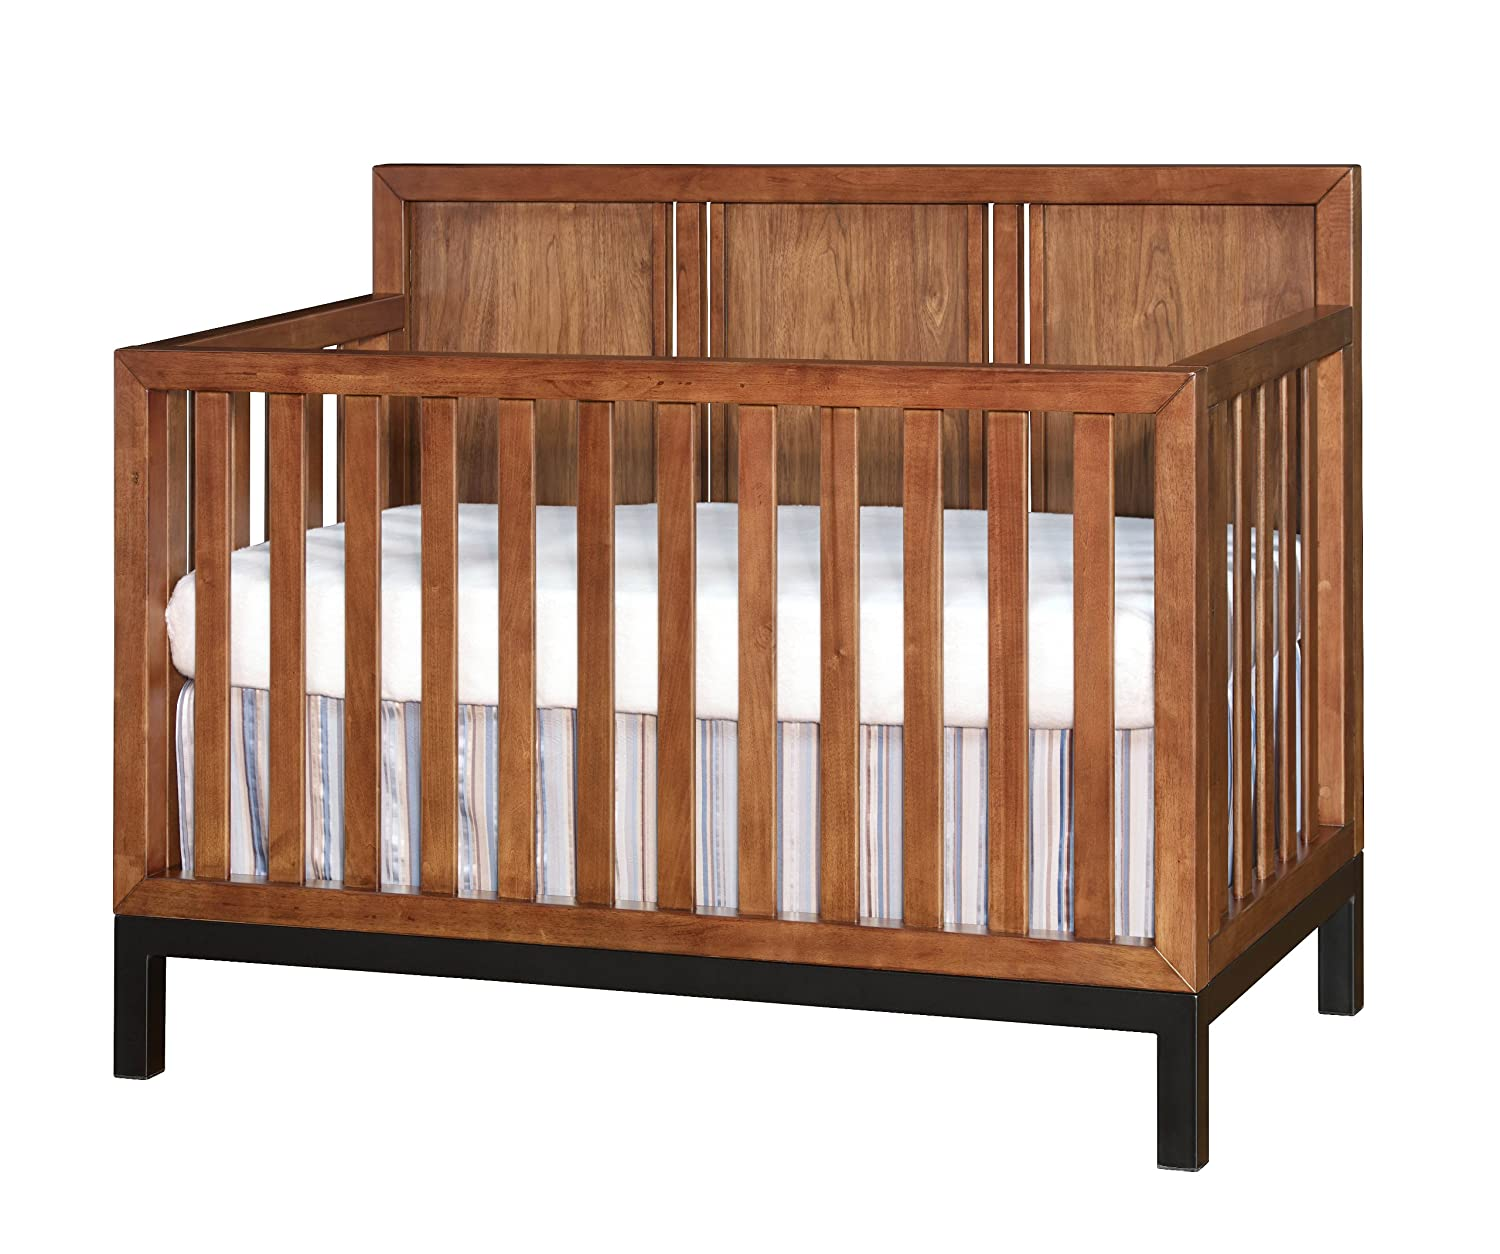 westwood design in convertible cribs crib shipping free vintage meadowdale